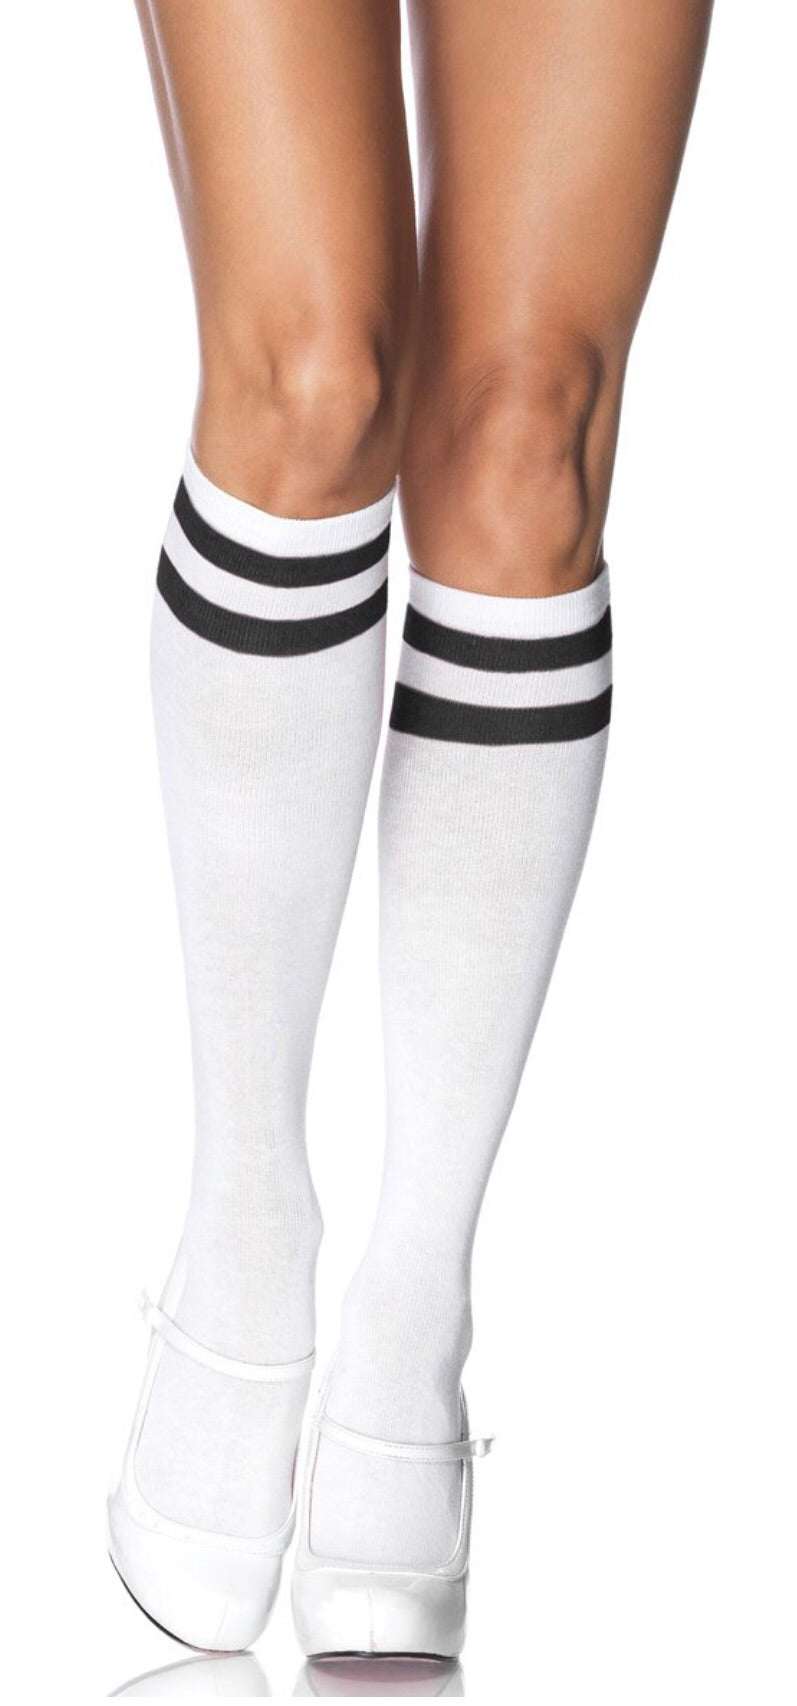 Athletic Knee High Stockings